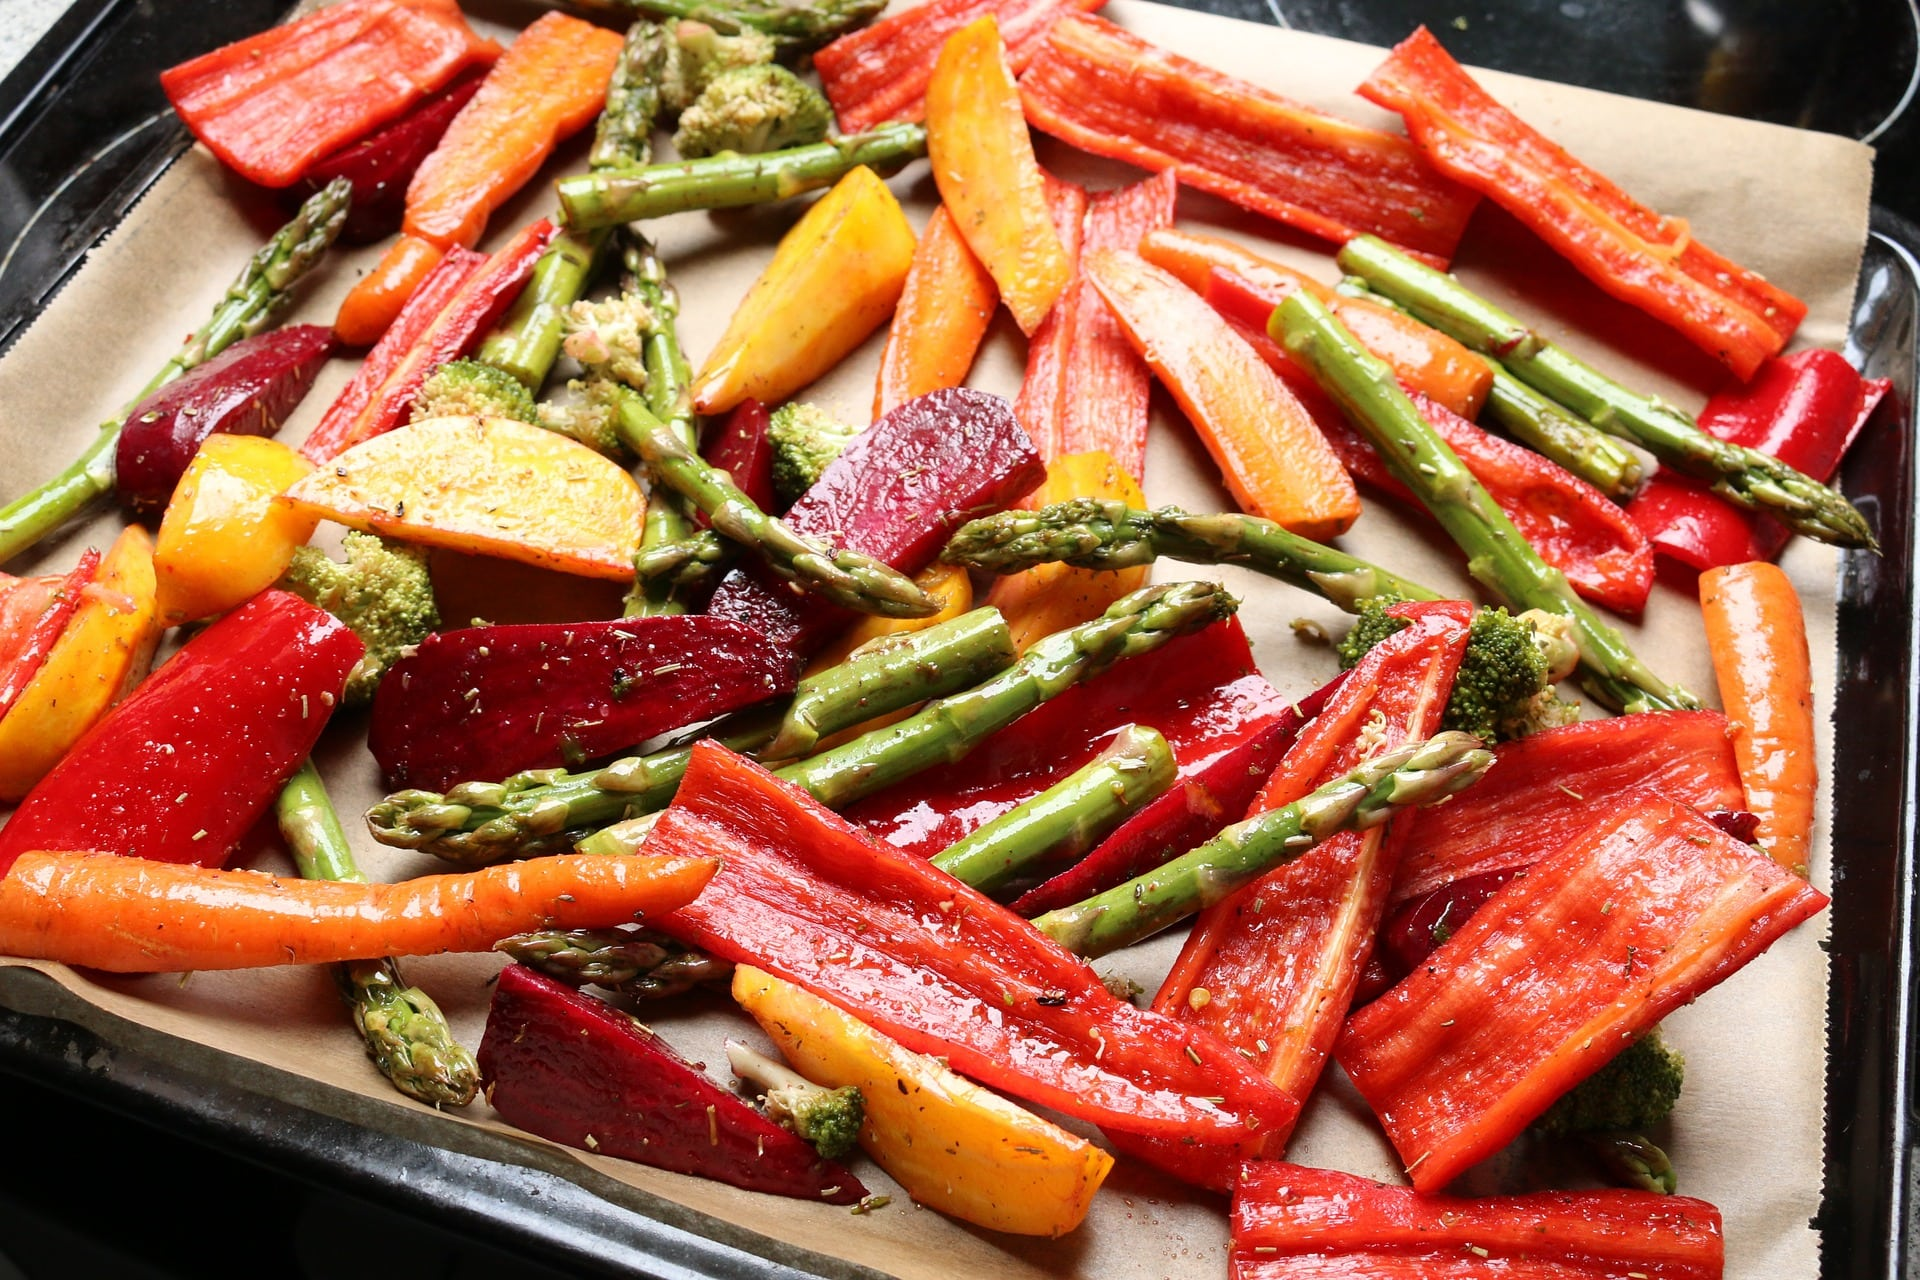 10 Easy Ways to Eat More Vegetables|The Holy Mess